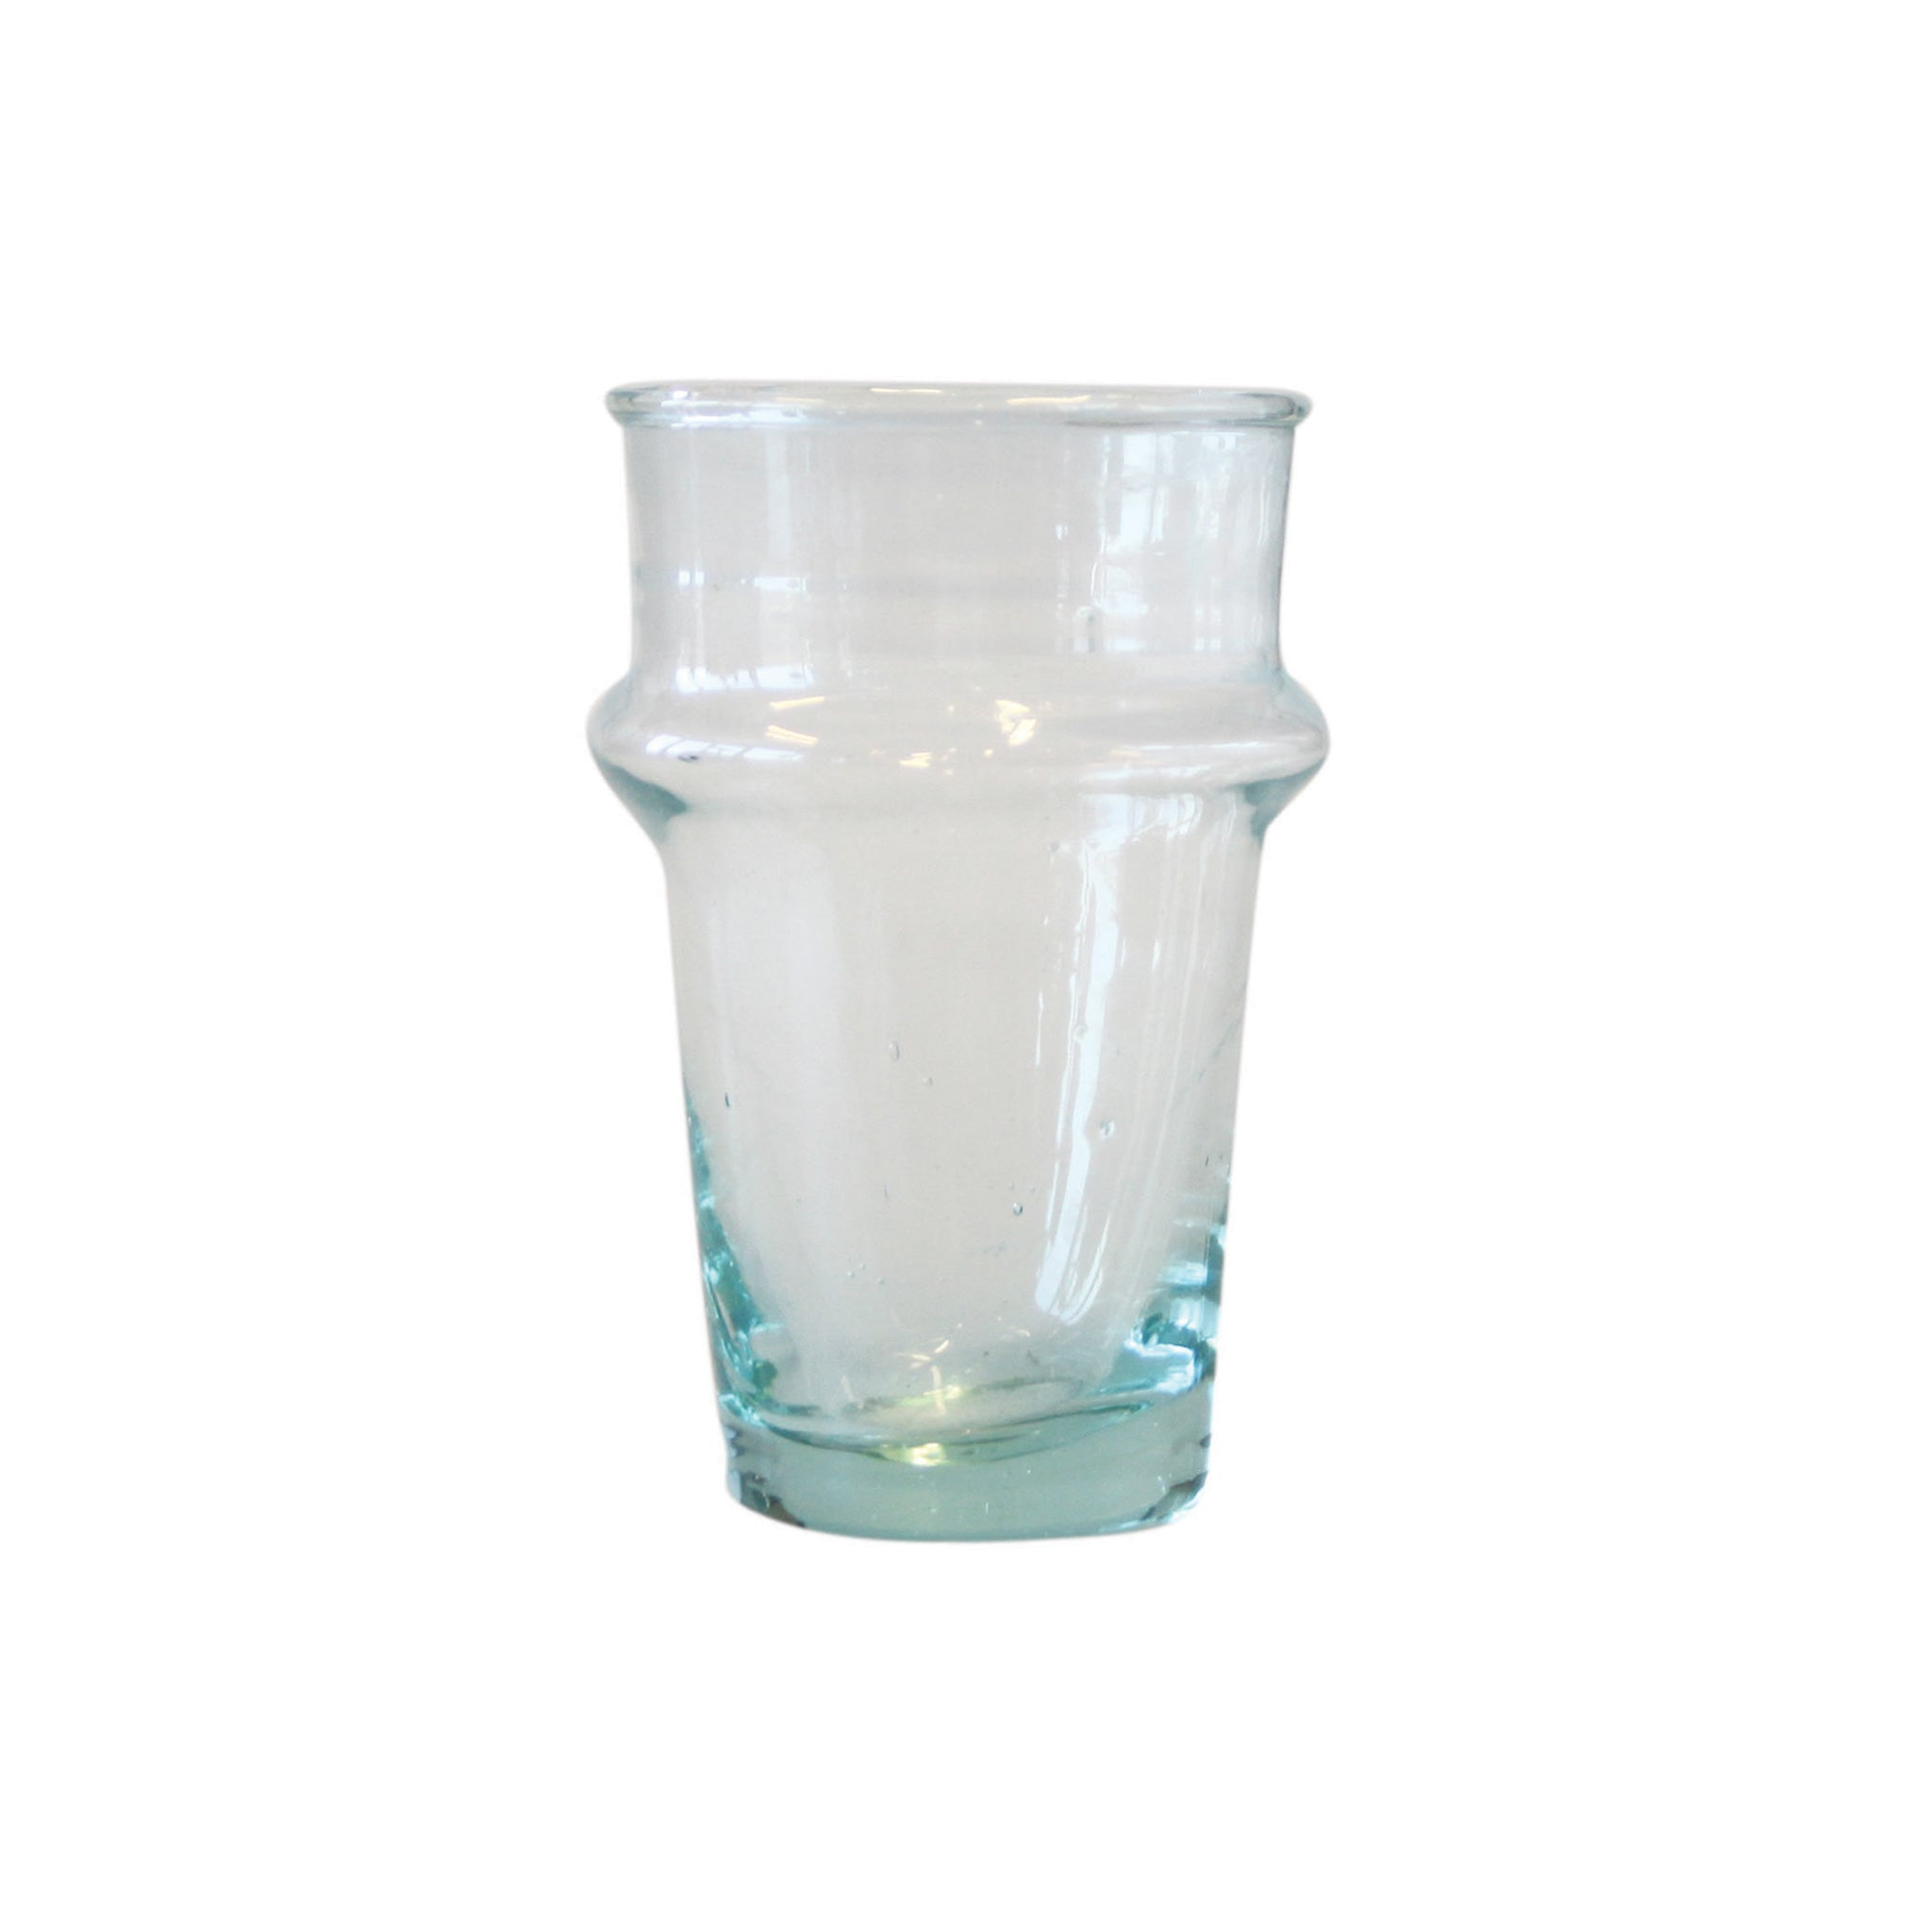 Urban Nature Culture Moroccan Water Glass - Recycled Glass Tableware Jugs & Glassware Middle Eastern Food